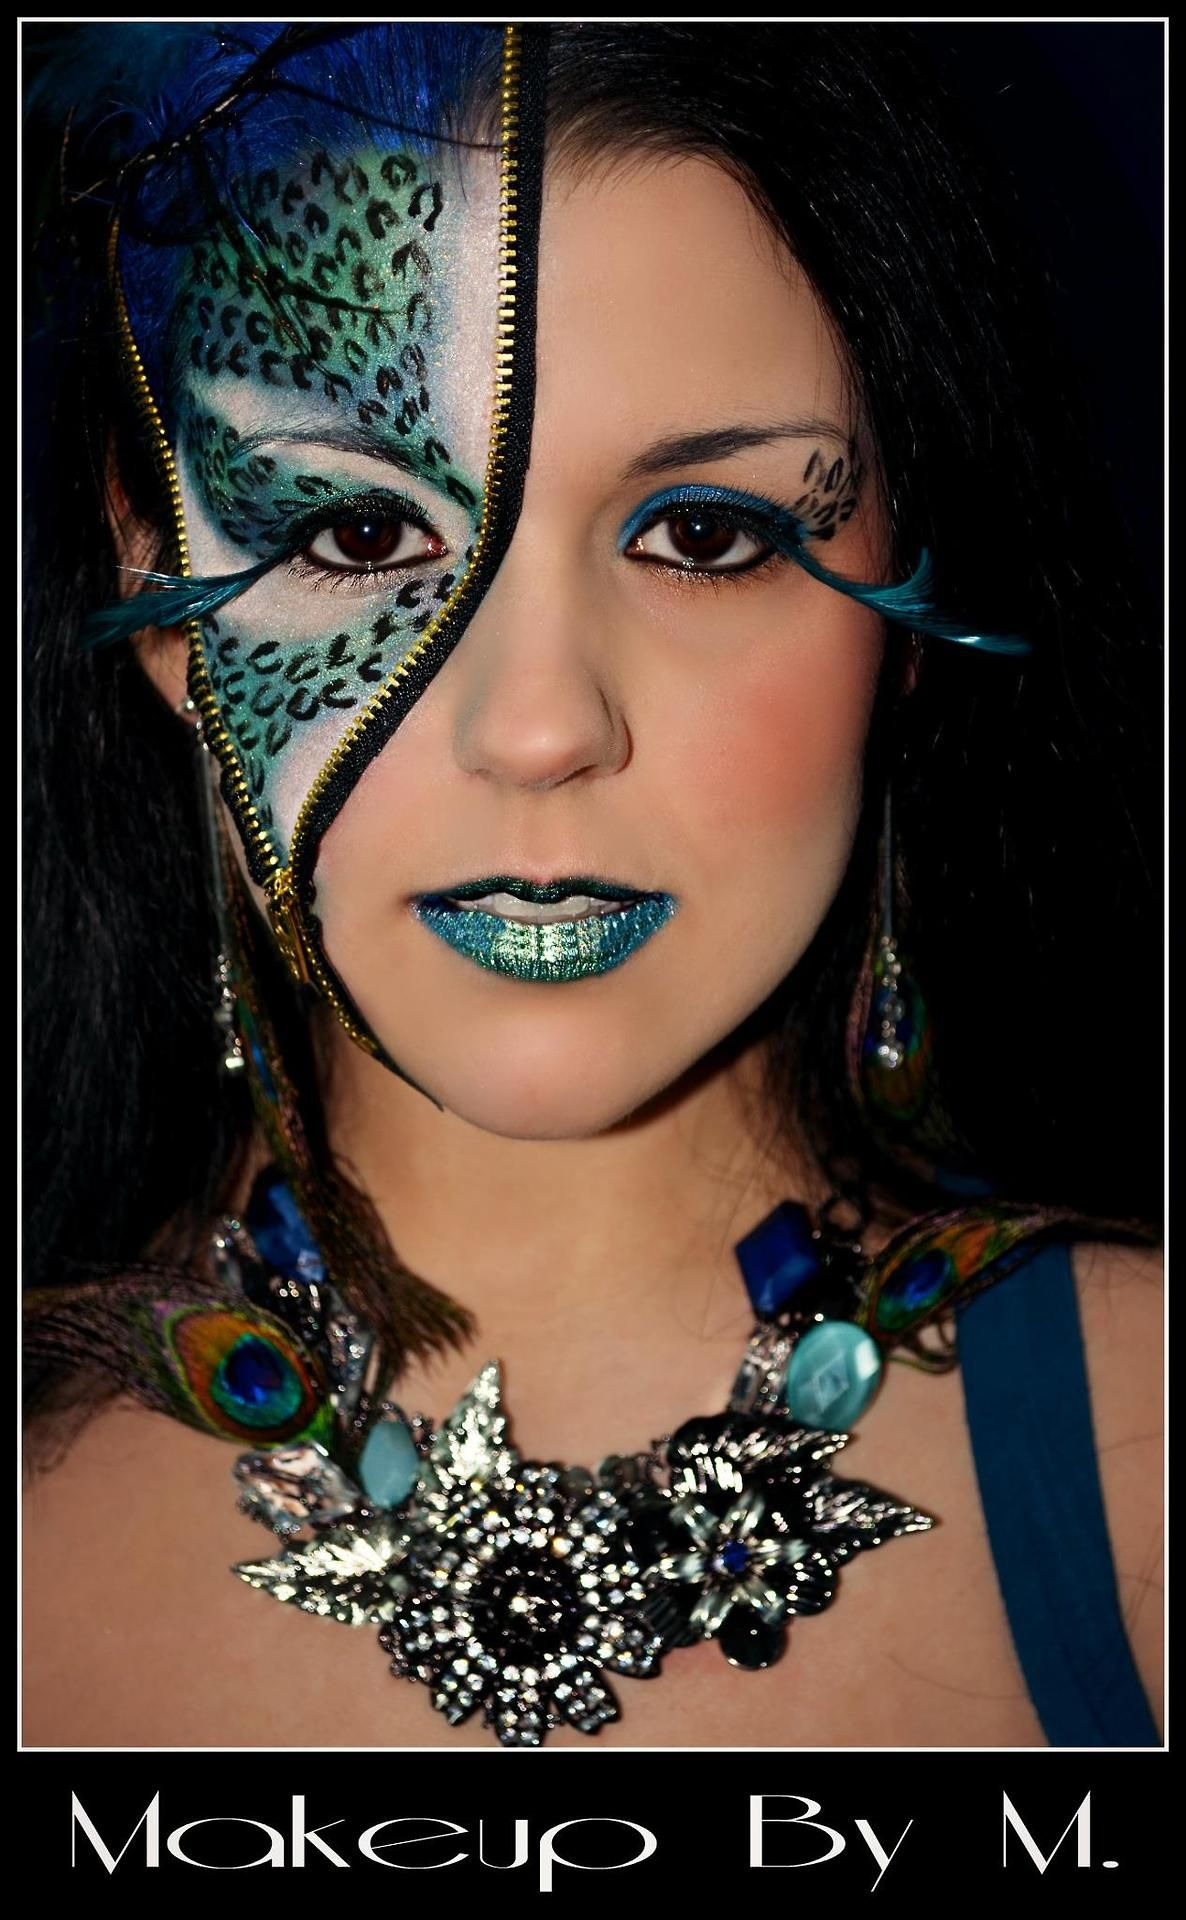 This lady is an amazing make up artist and photographer